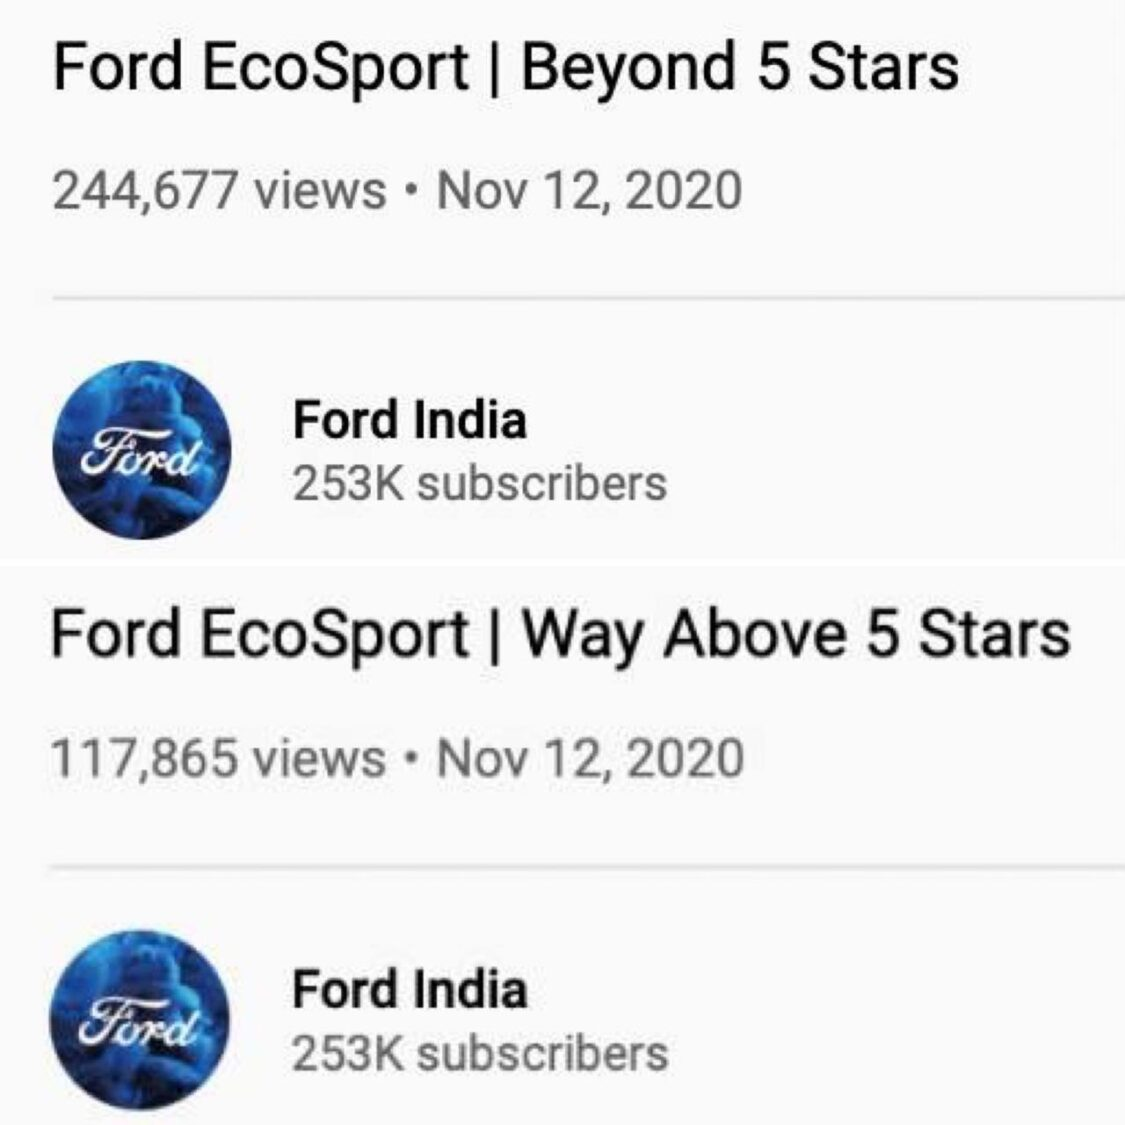 Ford India Changes Title Of Their Misleading Ad